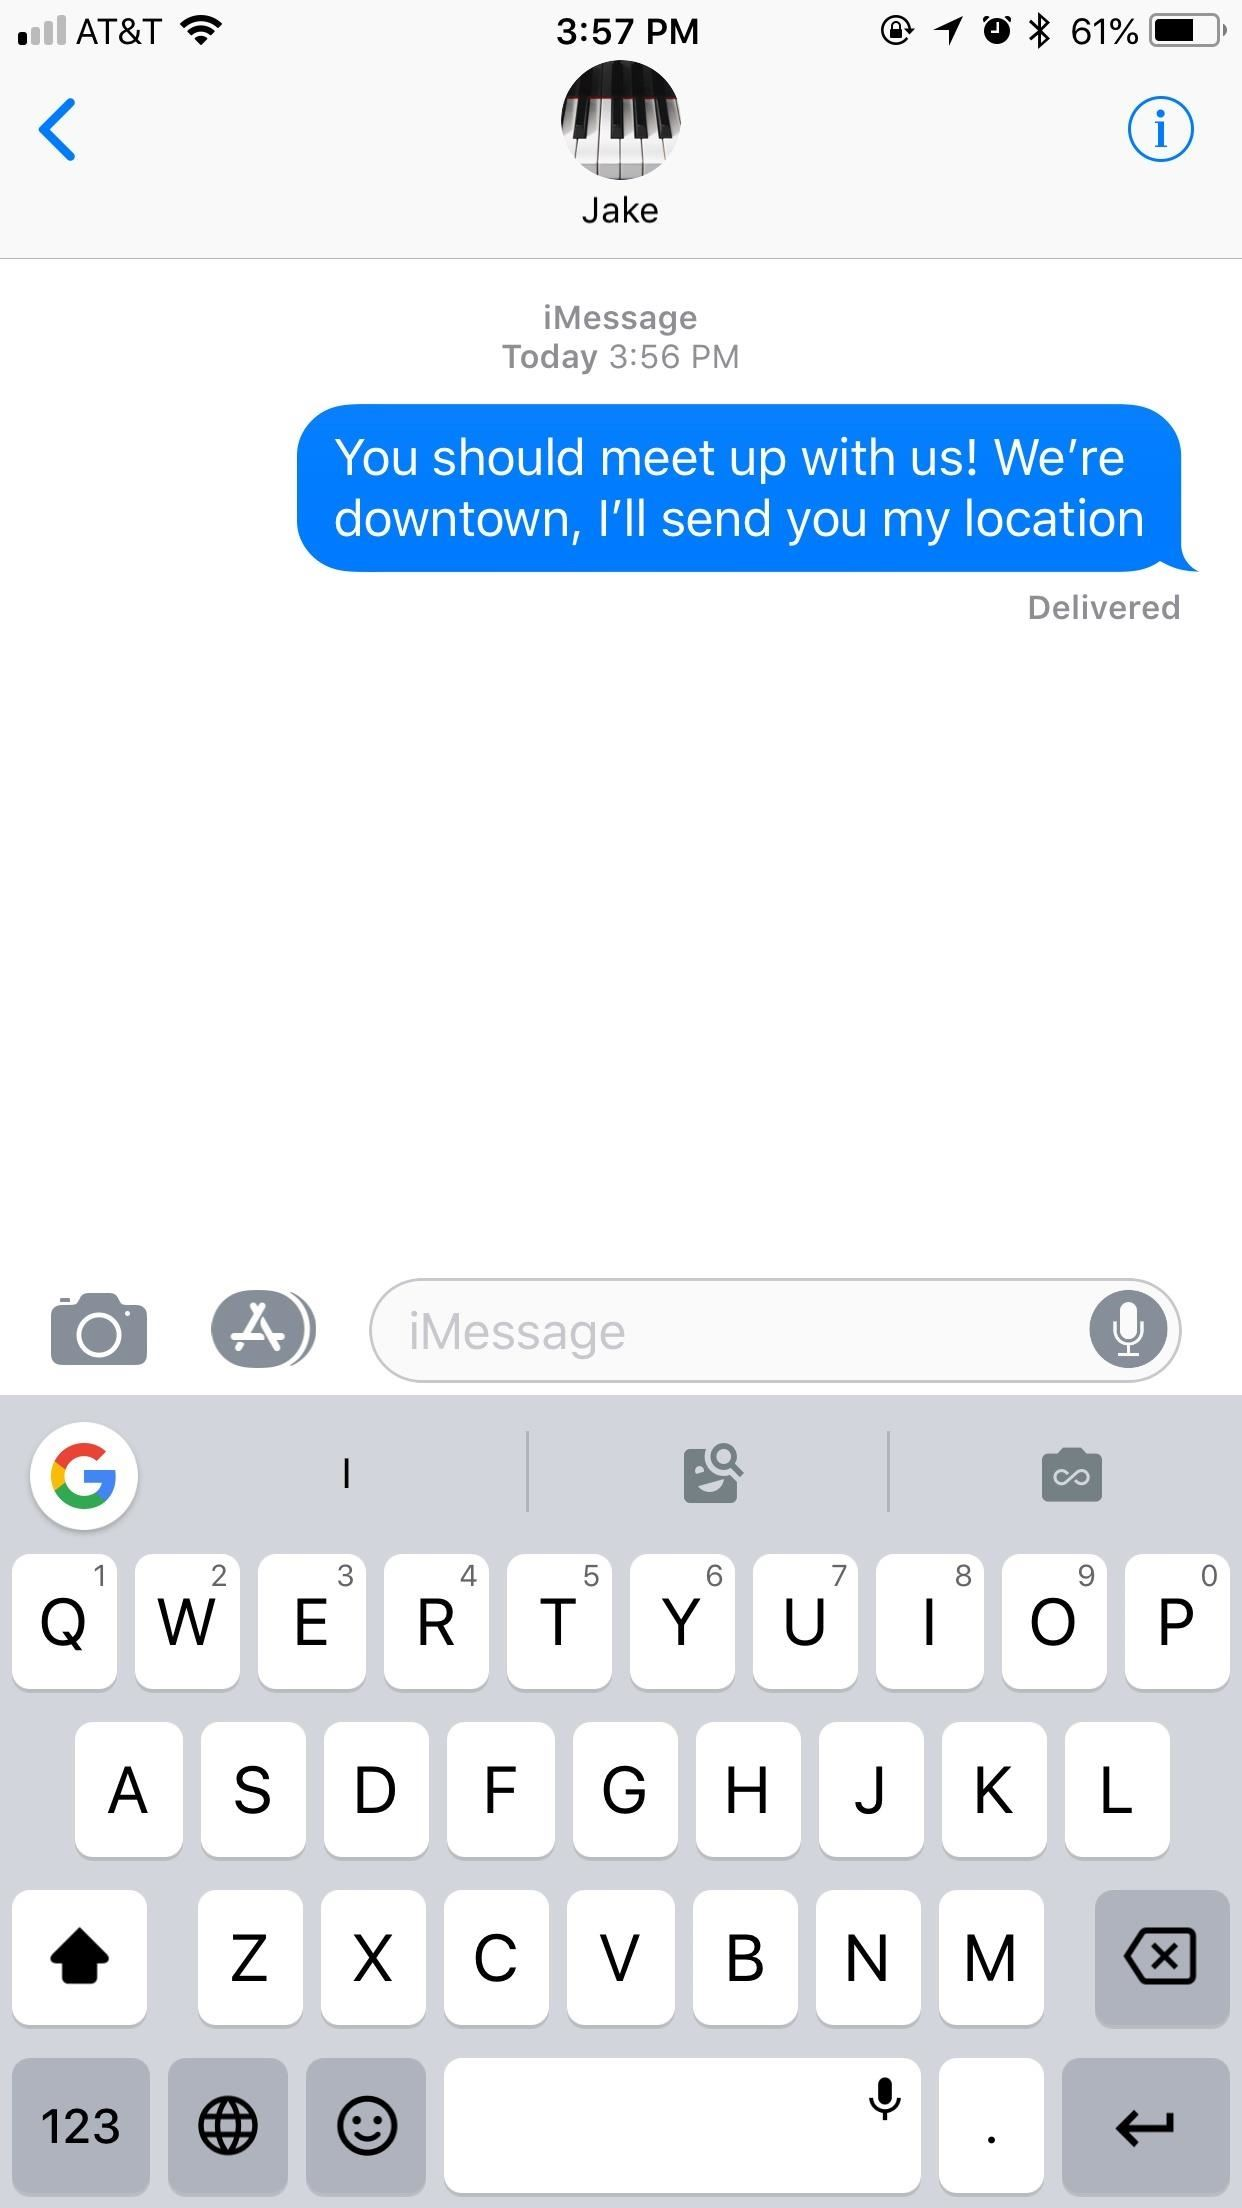 Messages 101: How to Send a Friend a Map to Your Current Location or Let Them Track You While Moving